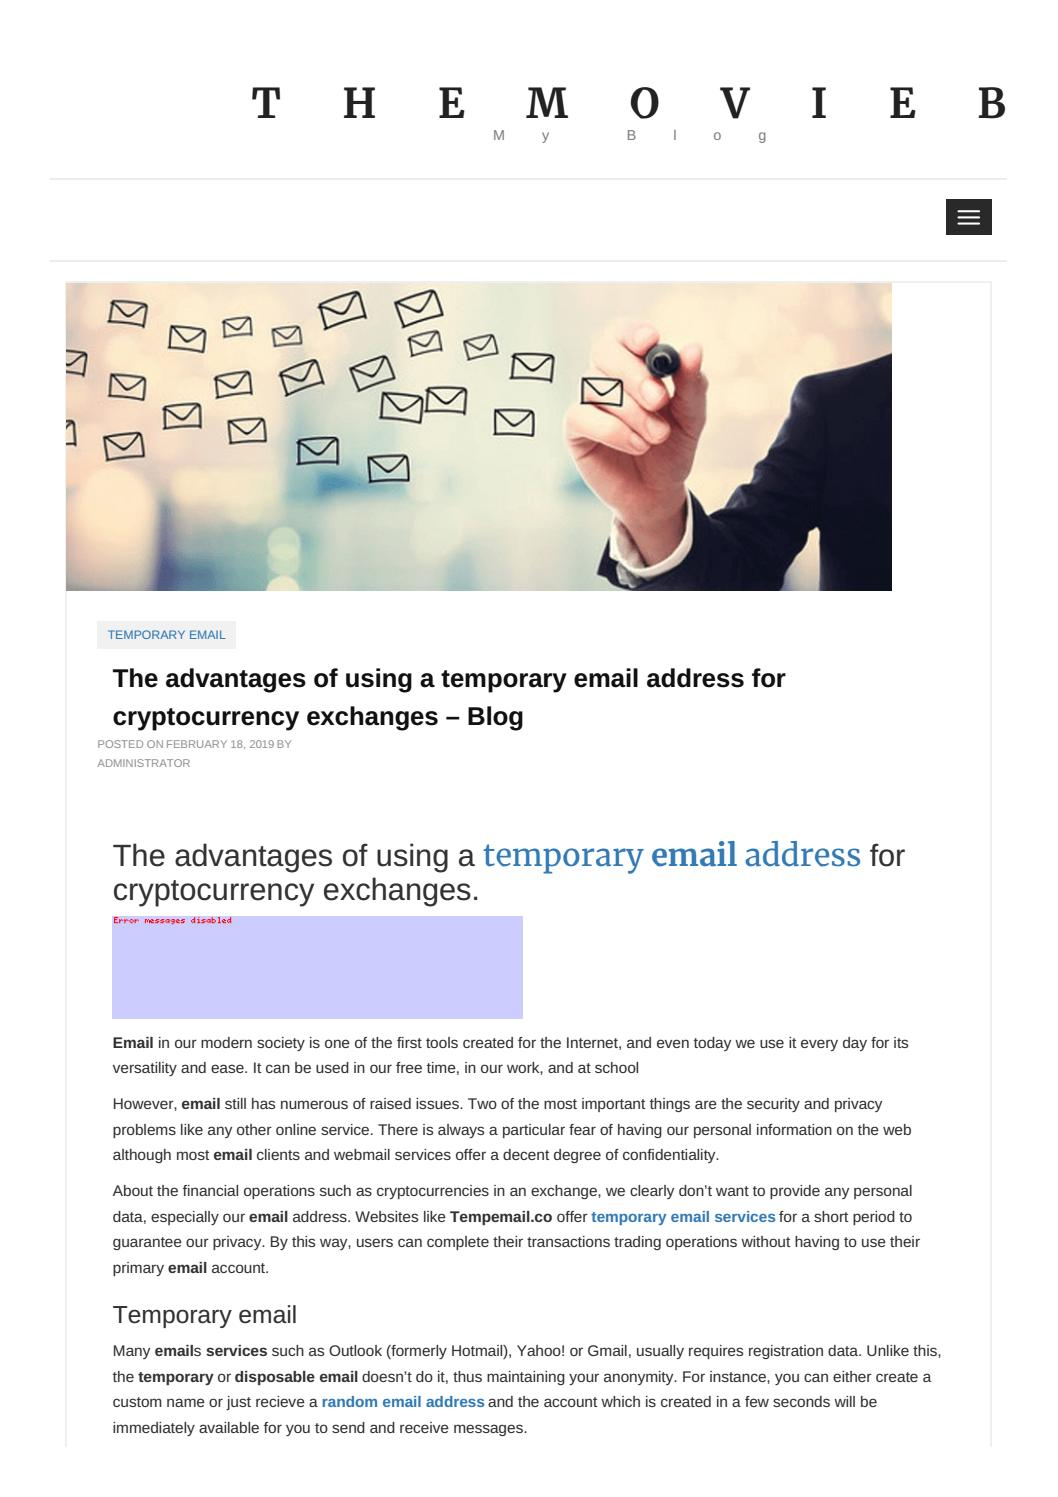 The advantages of using a temporary email address for cryptocurrency